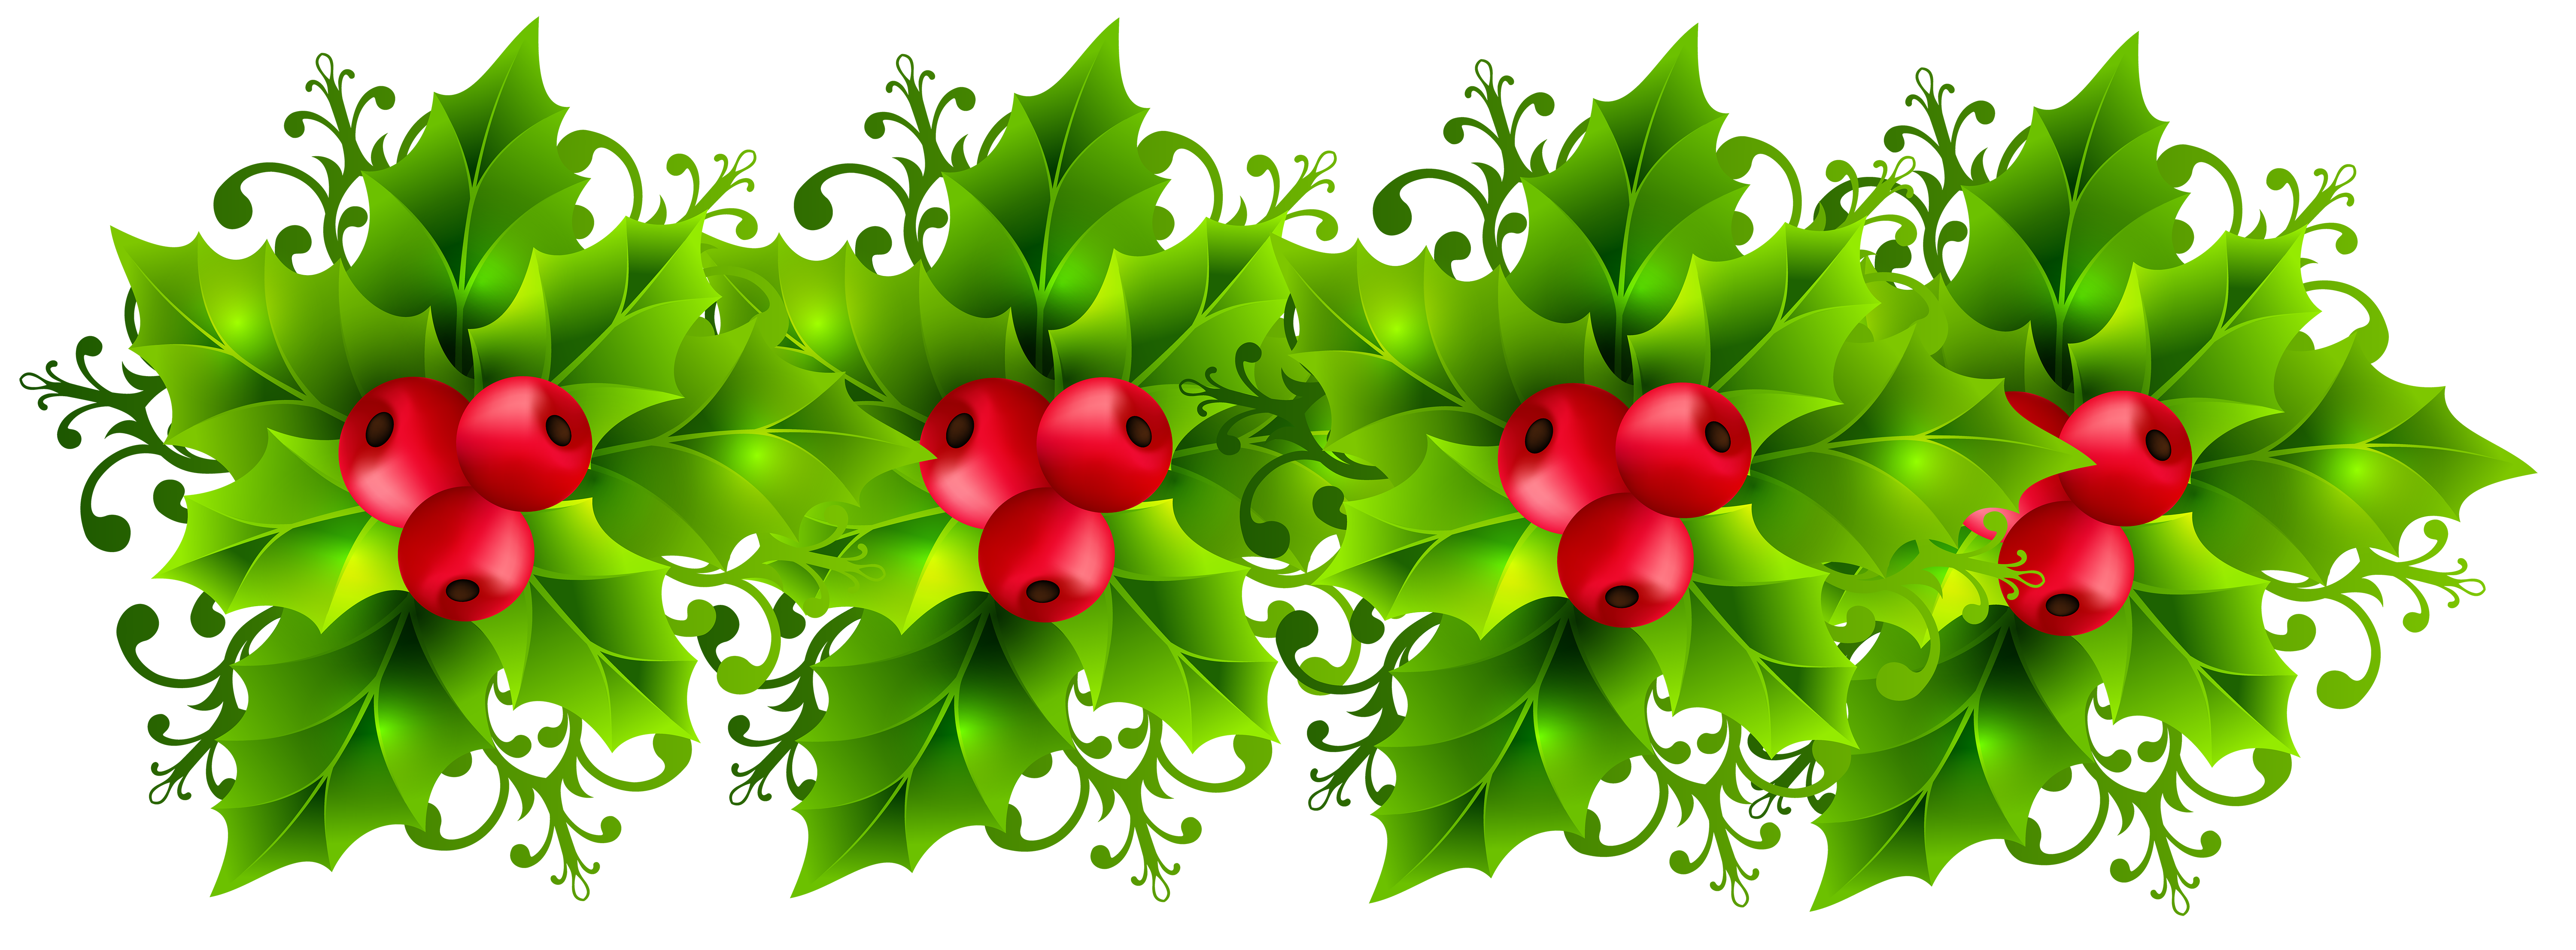 Holly clipart swag, Holly swag Transparent FREE for download on.